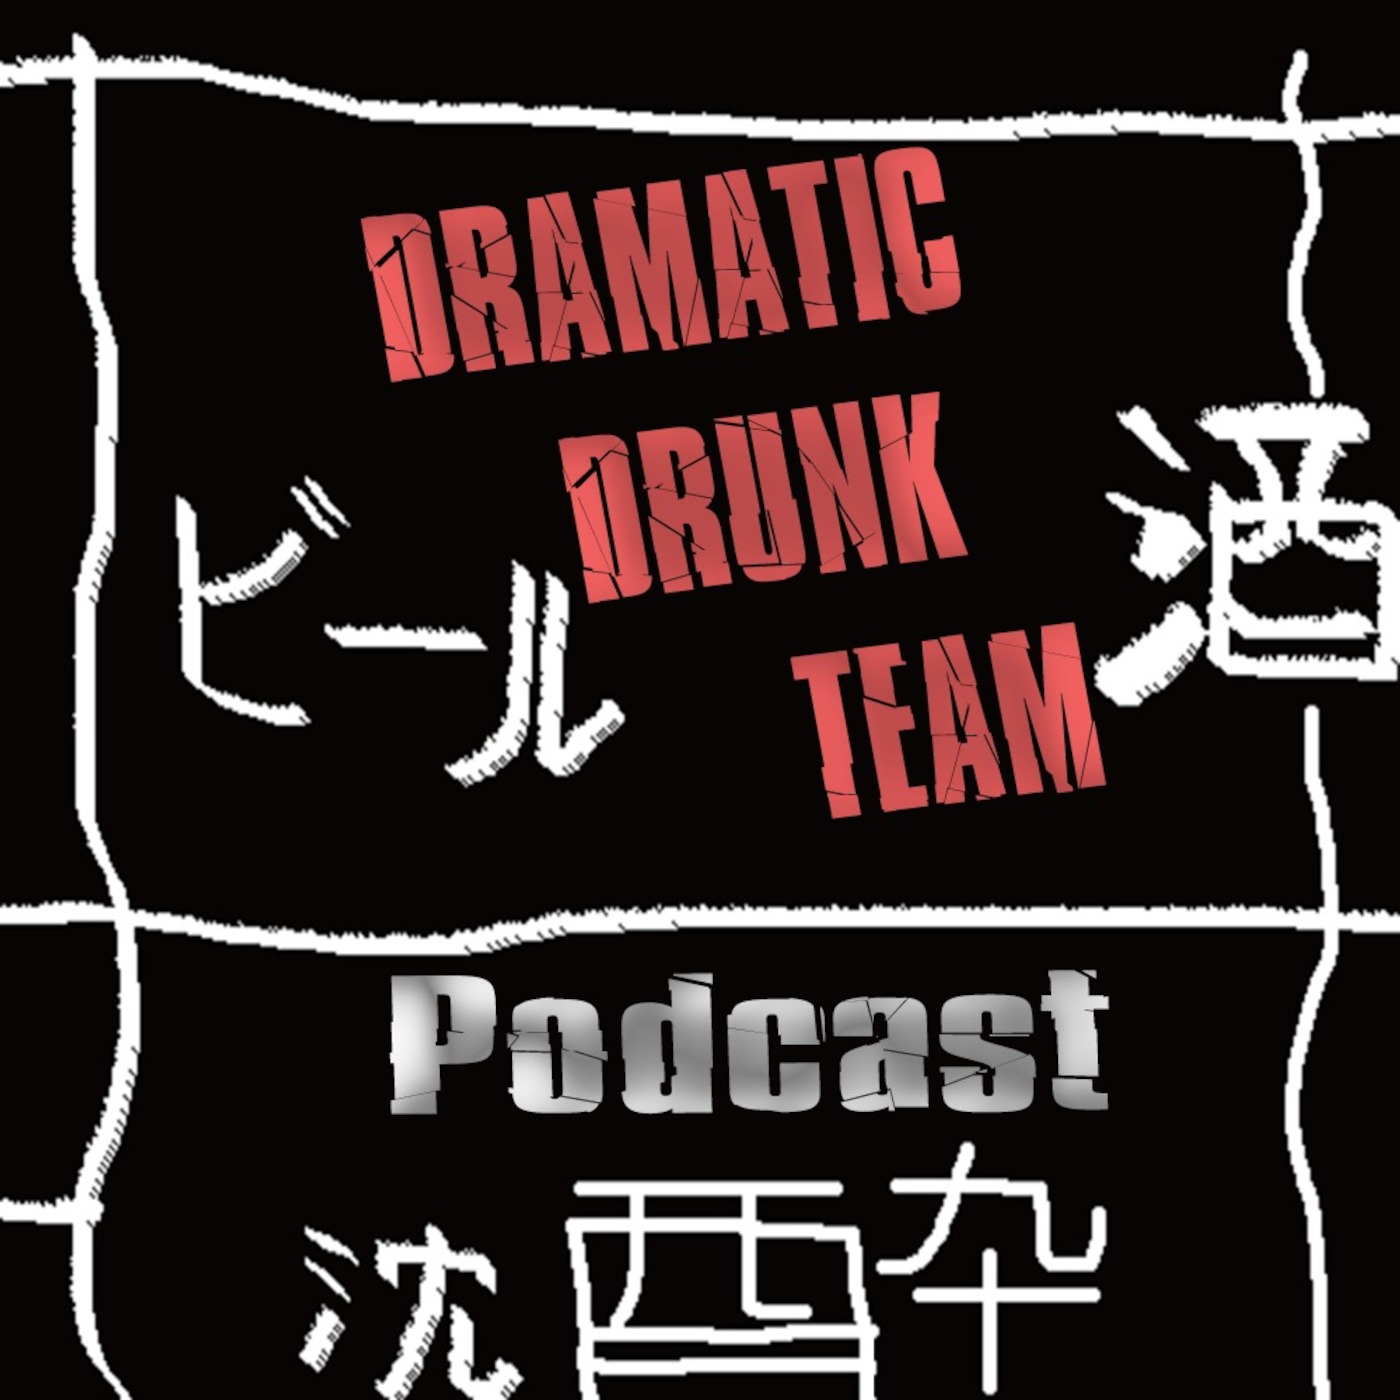 Dramatic Drunk Team